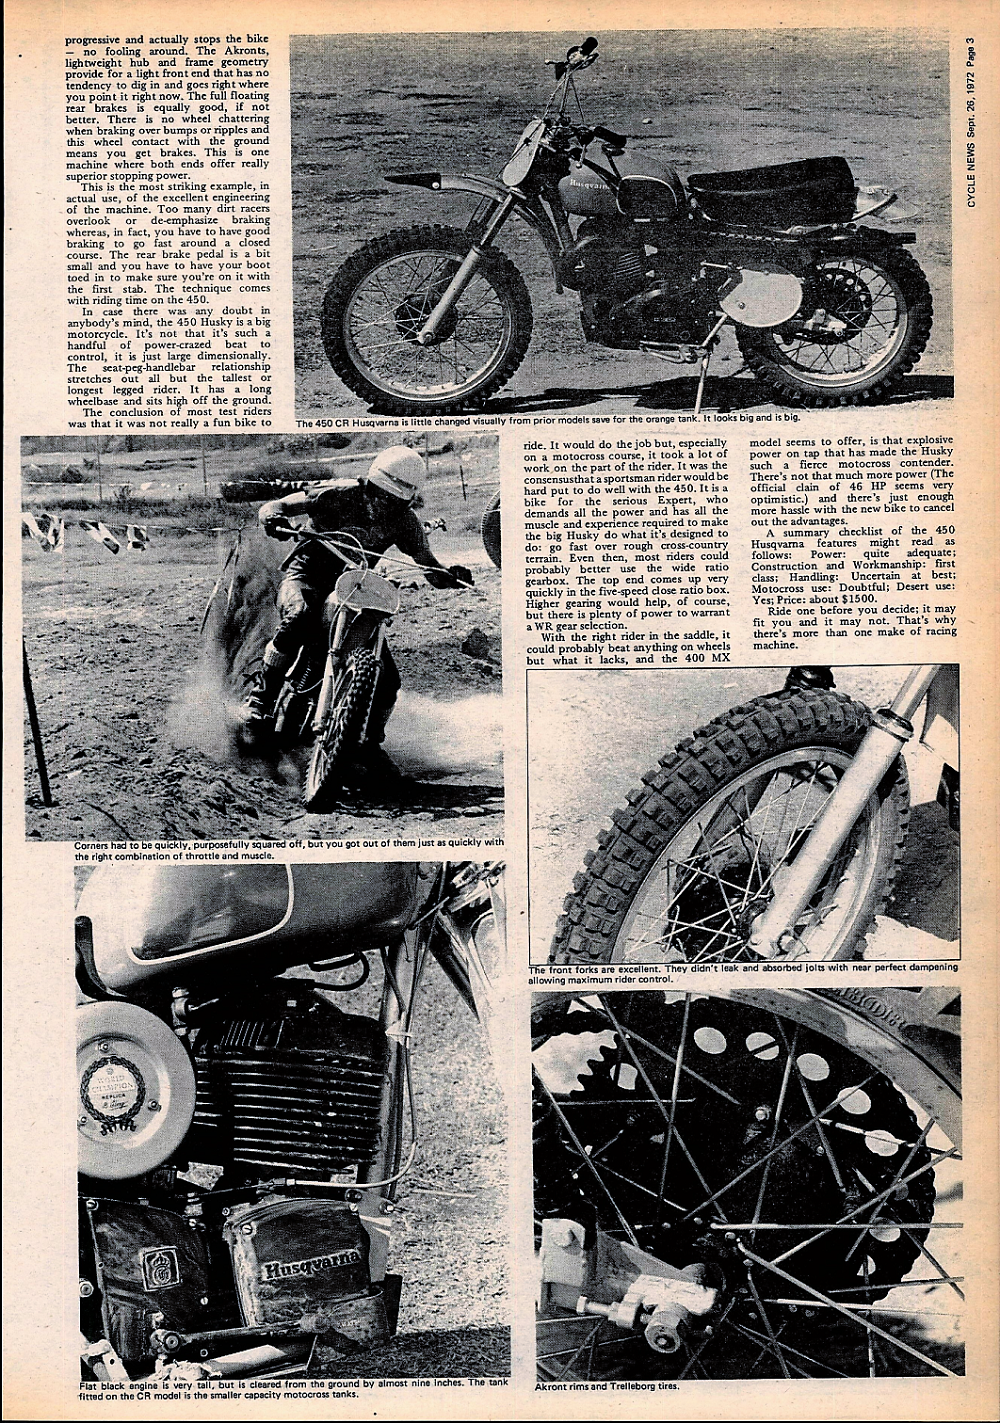 1972 Husqvarna 450 CR road test.2.jpg